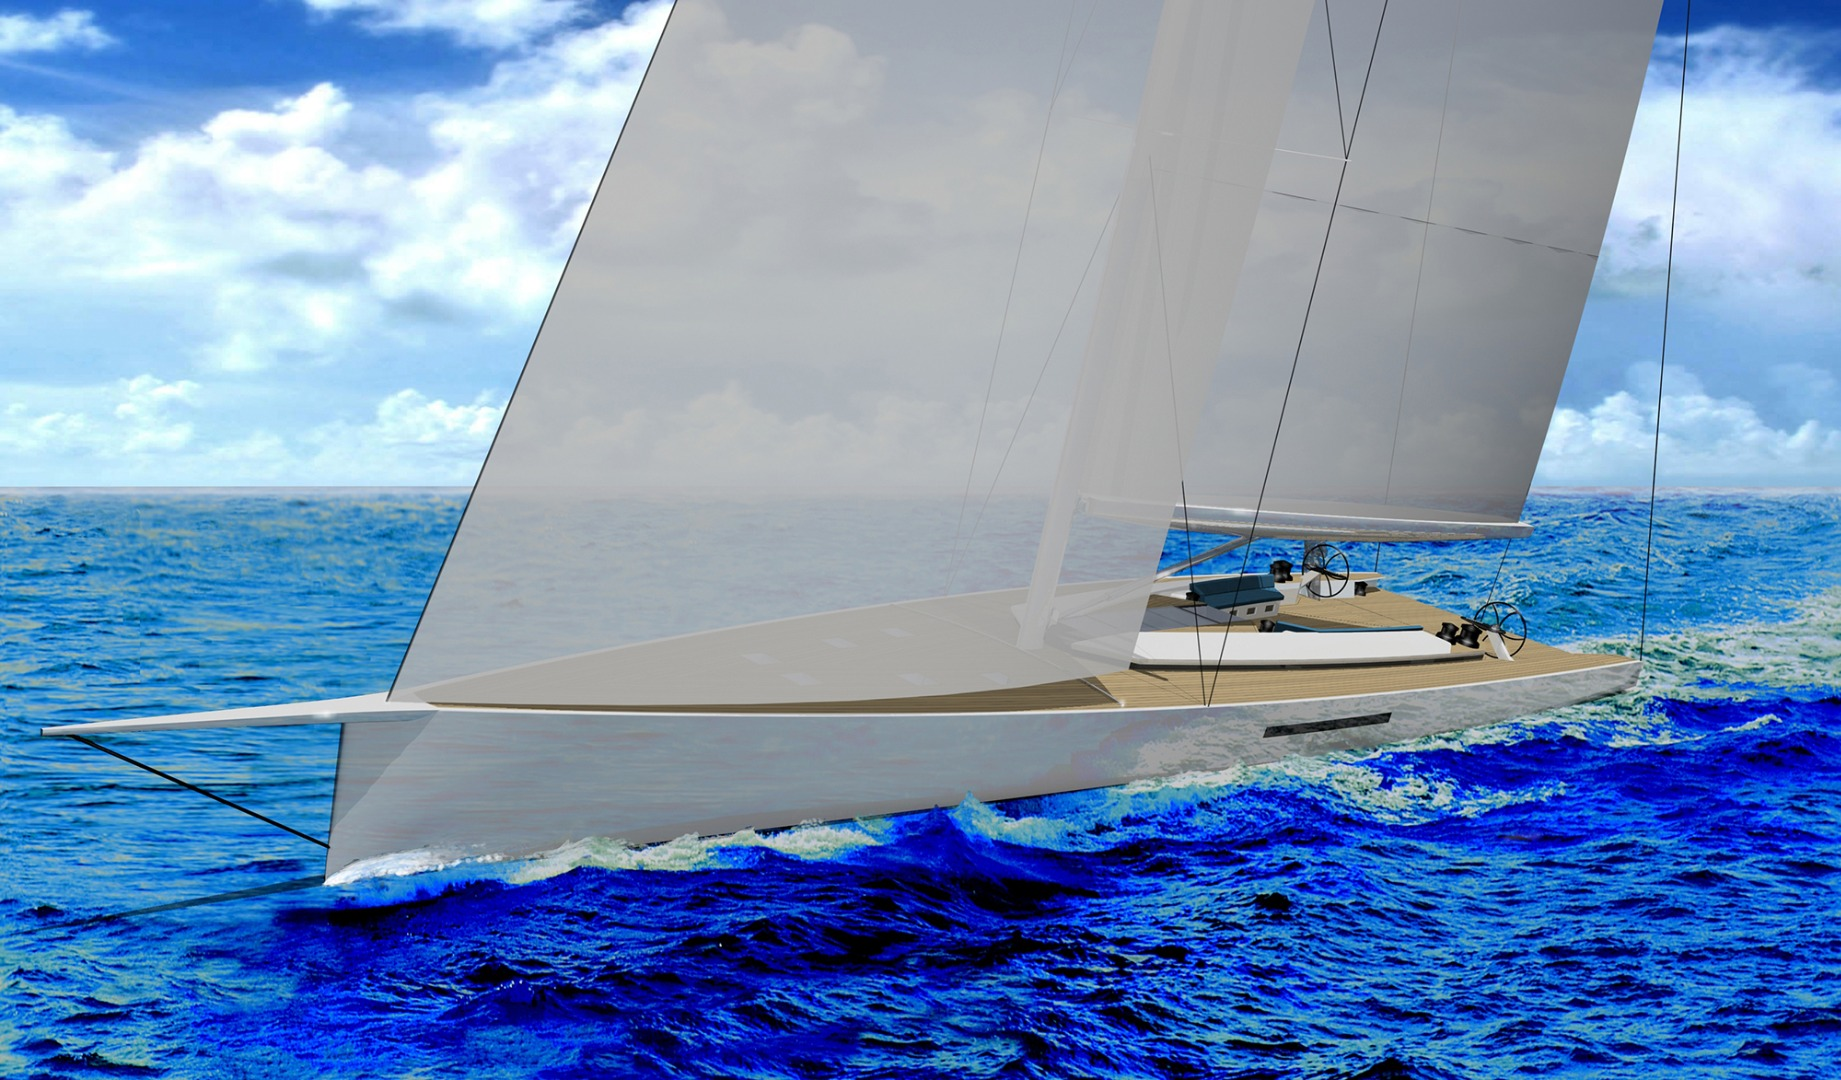 . This is a high performance racing class branded with the Wally name, but also capable of racing in bucket and superyacht regattas under the ORCsy rule.